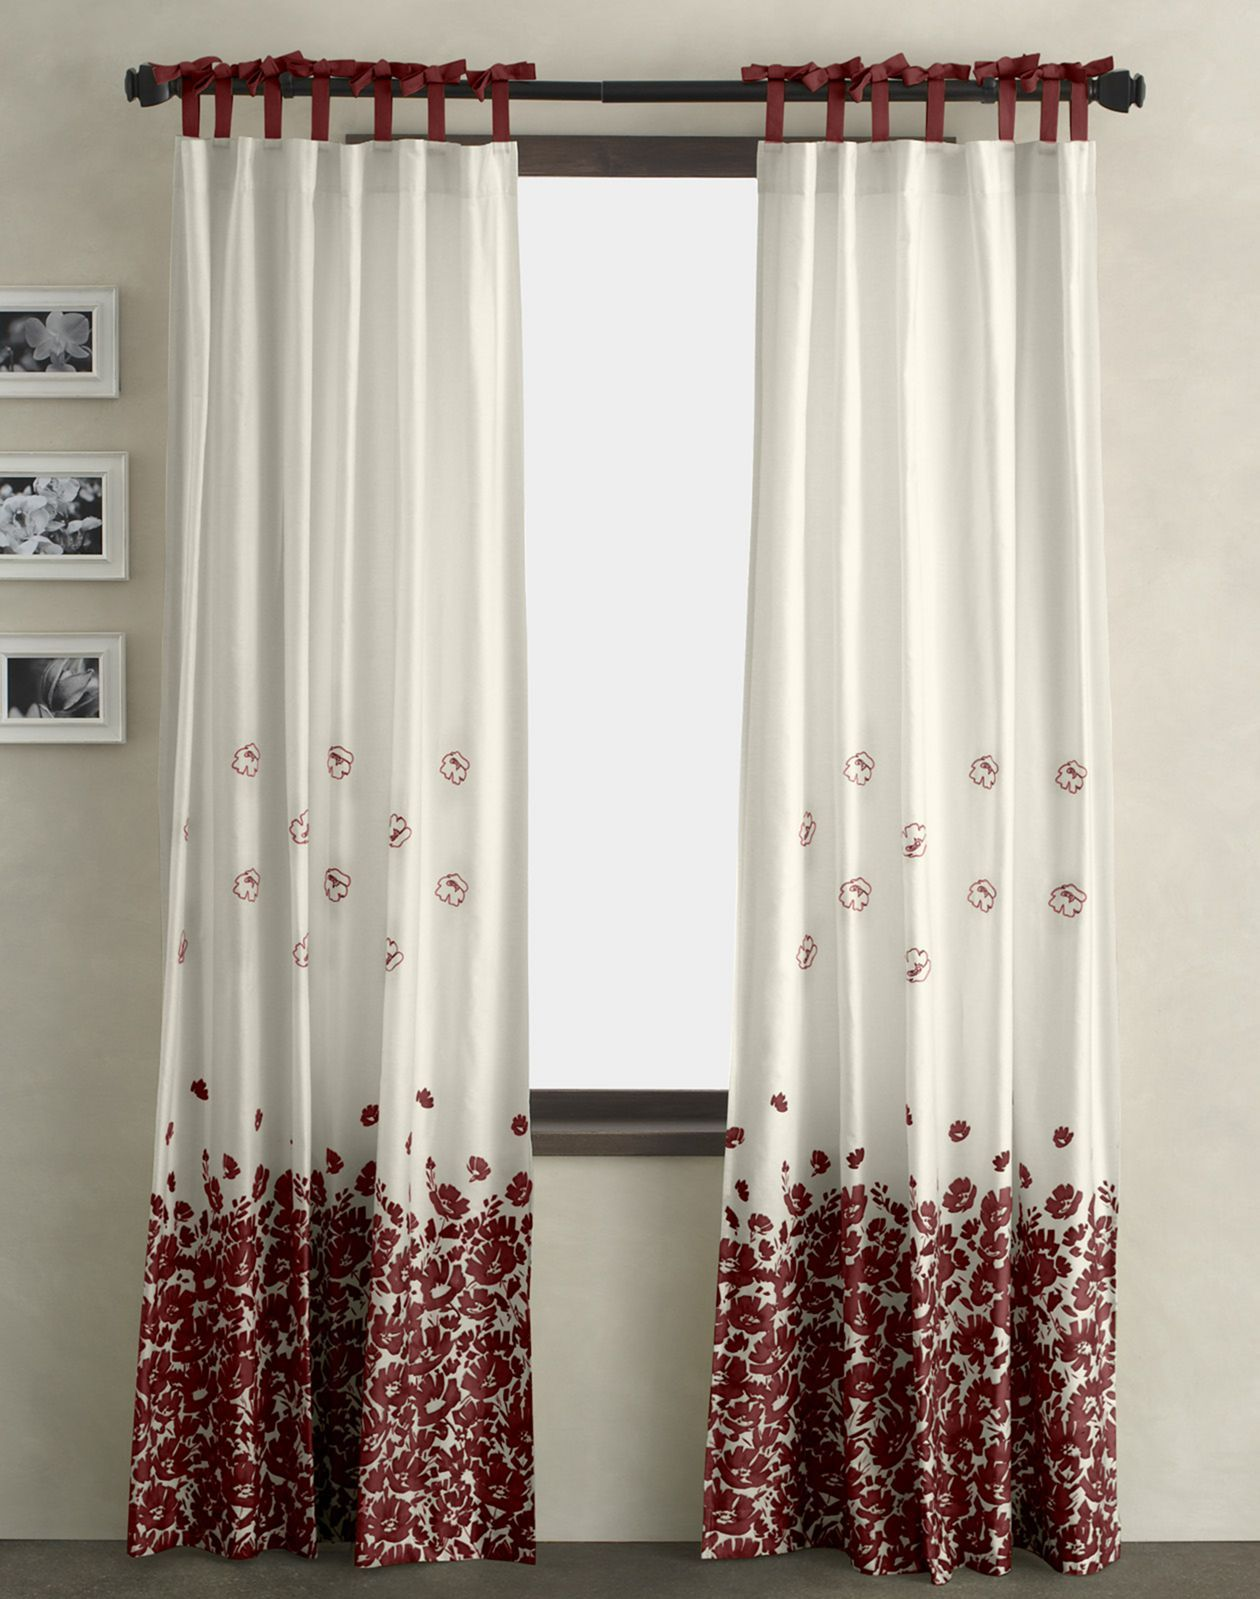 20 Amazing Ideas To Make Your Simple Houses Fell More Comfortable And Look Luxurious Red And White Curtains Curtains Living Room Curtains